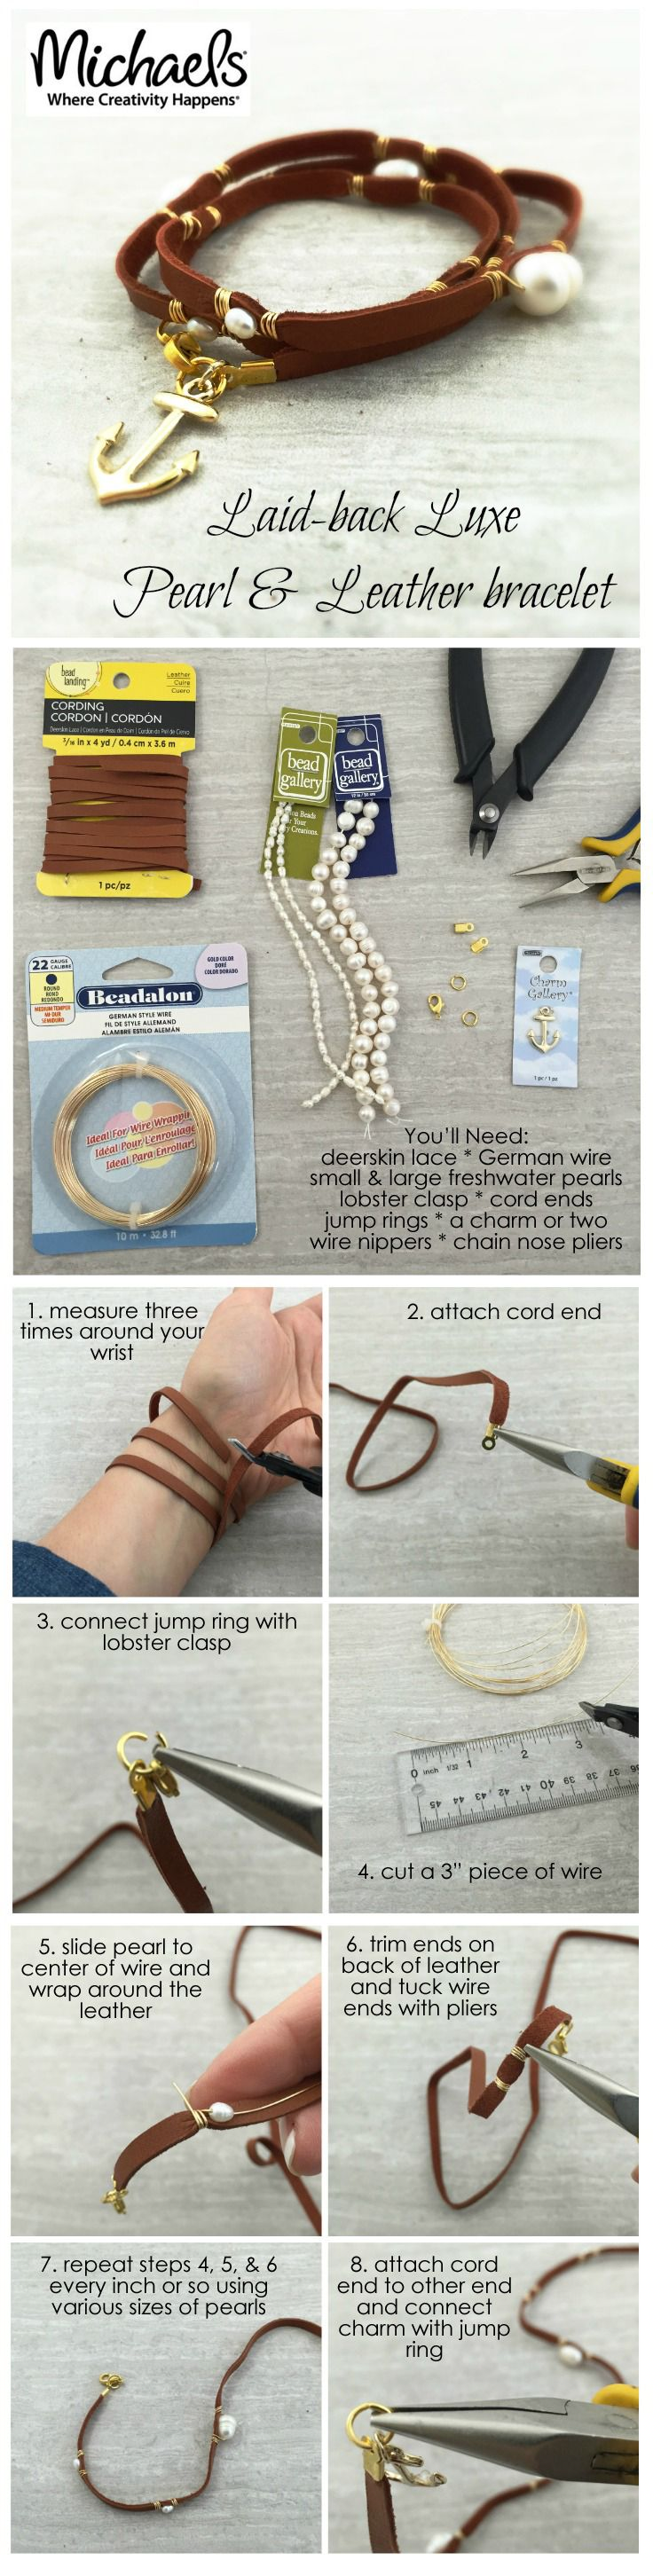 Make Your Own Diy Leather Pearl Wrap Bracelet With Bead Gallery Beads Available At Michaelss Madewithmichaels